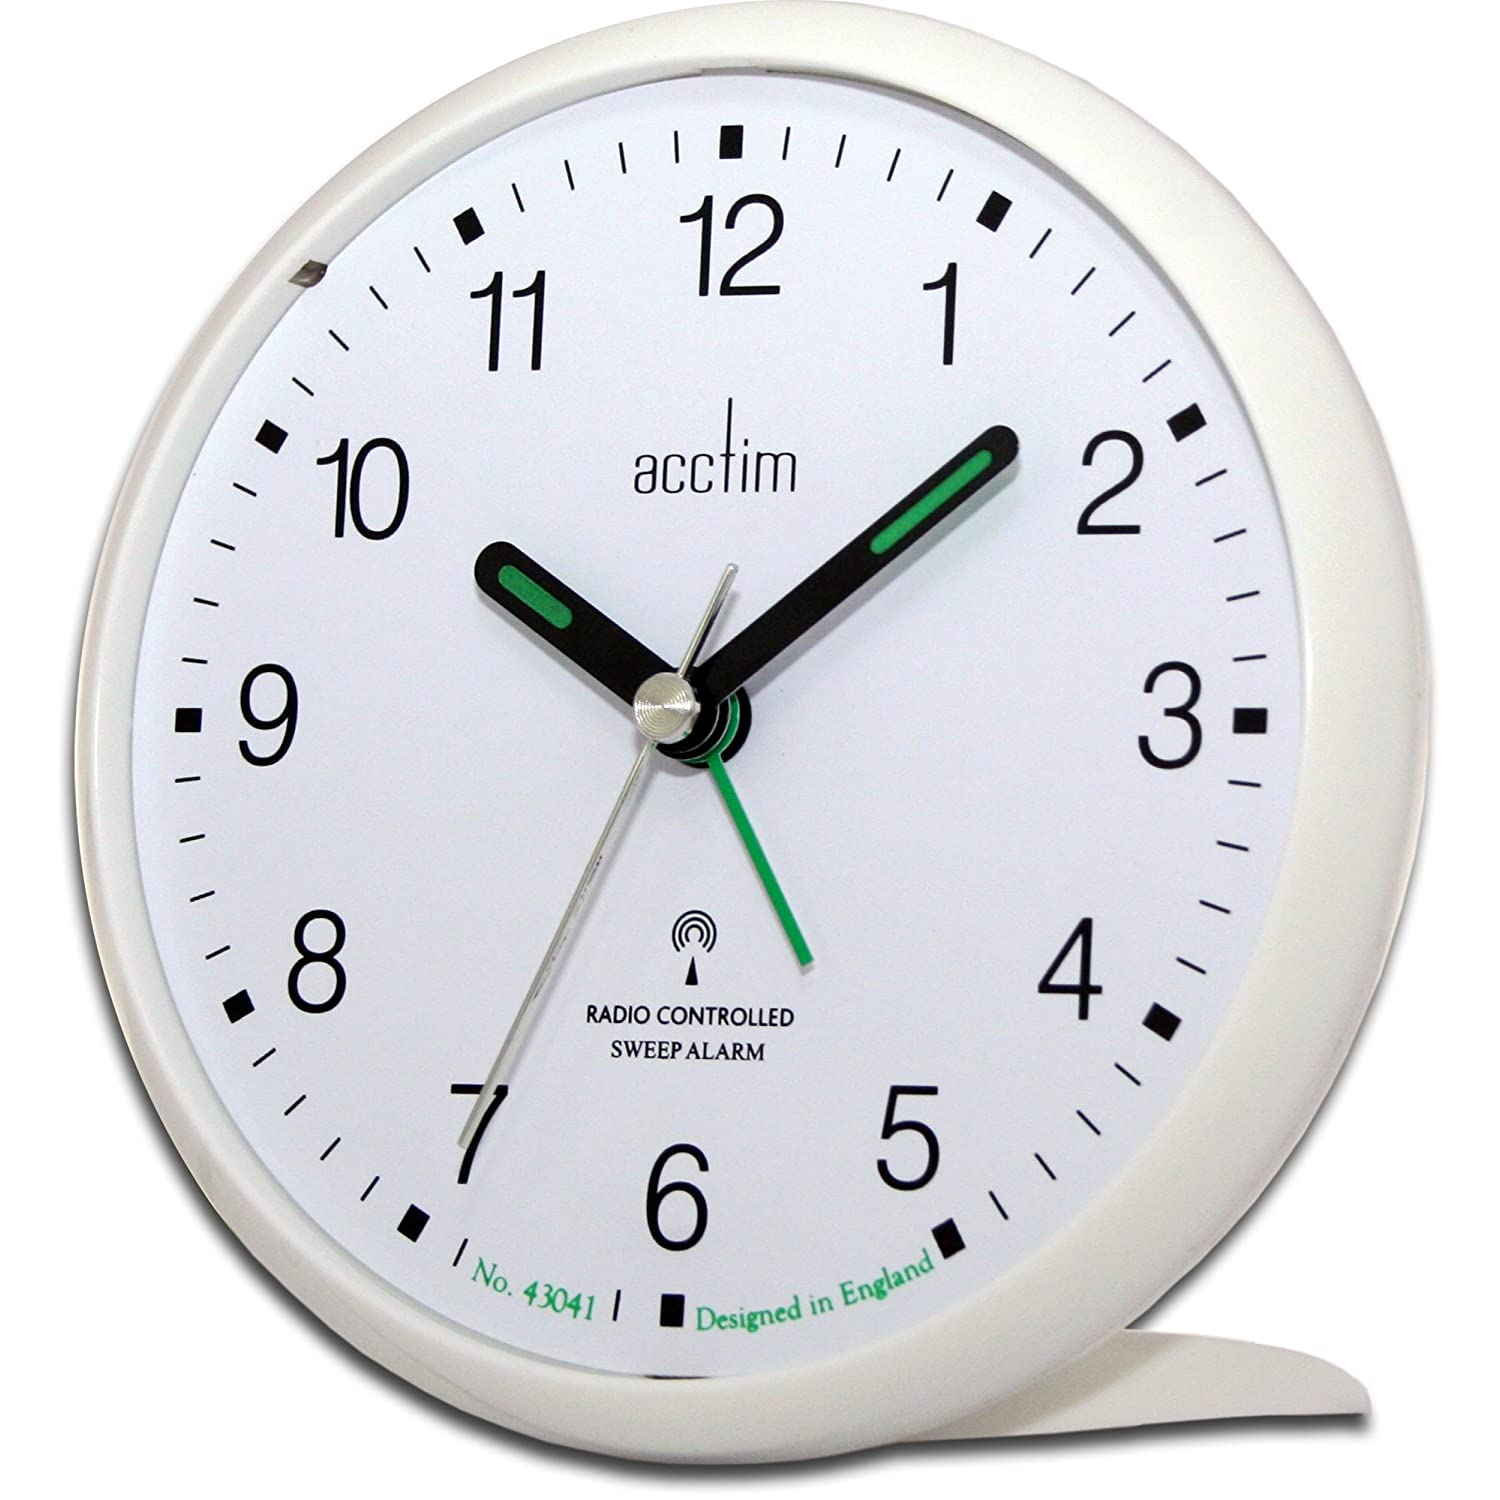 acctim 71452 yale very bold alarm clock white msf signal radio controlled ebay. Black Bedroom Furniture Sets. Home Design Ideas